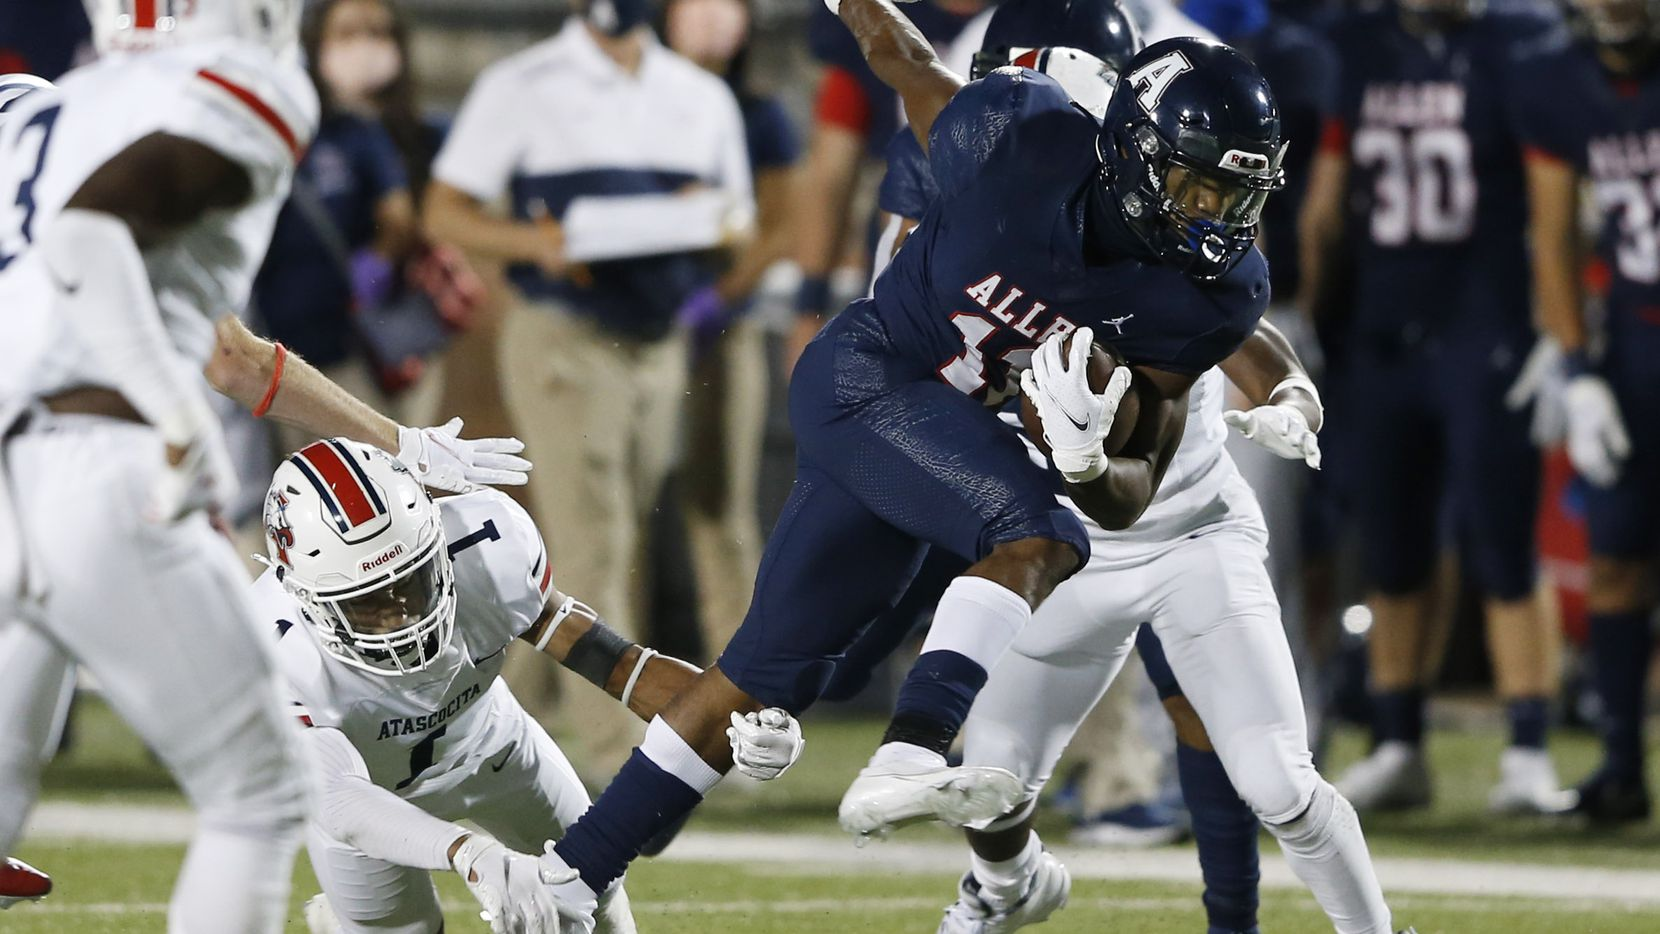 Allen's Jordan Johnson (11) is tripped up by Humble Atascocita's Jordan Augustine (1) on a play during the first quarter at Eagle Stadium in Allen, Texas on Friday, October 2, 2020. (Vernon Bryant/The Dallas Morning News)